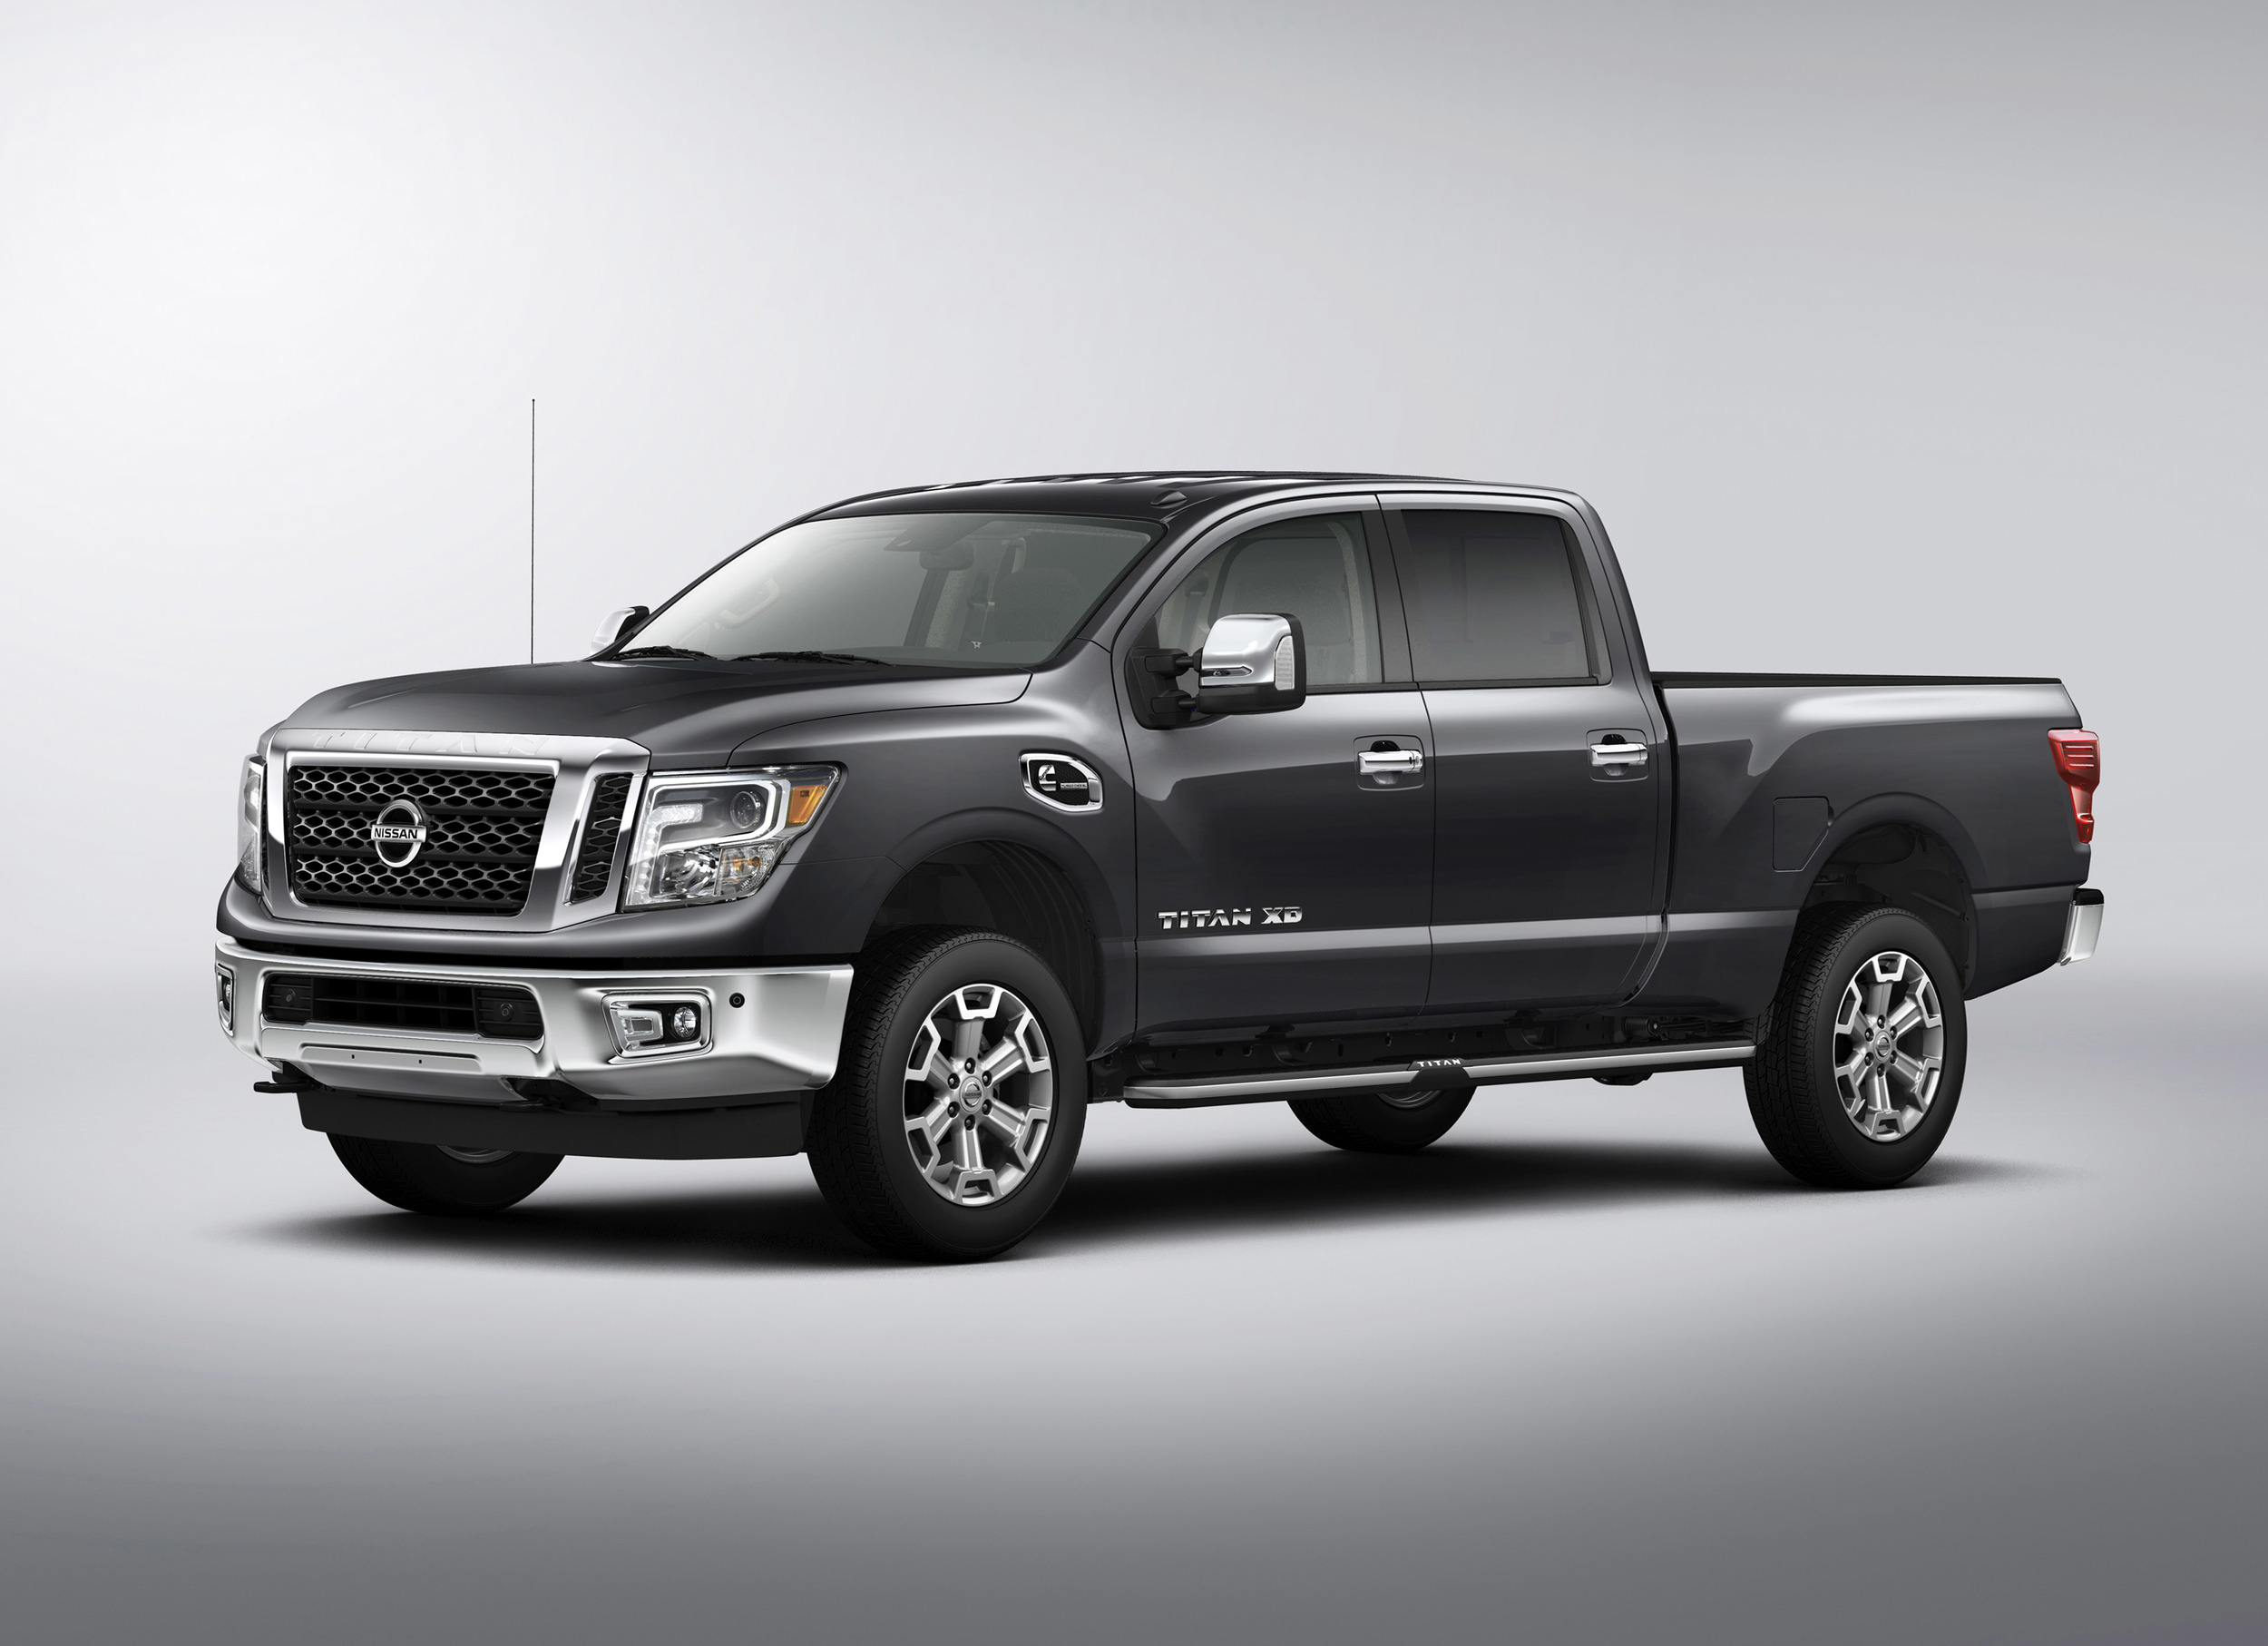 2016 nissan titan xd photo gallery autoblog. Black Bedroom Furniture Sets. Home Design Ideas